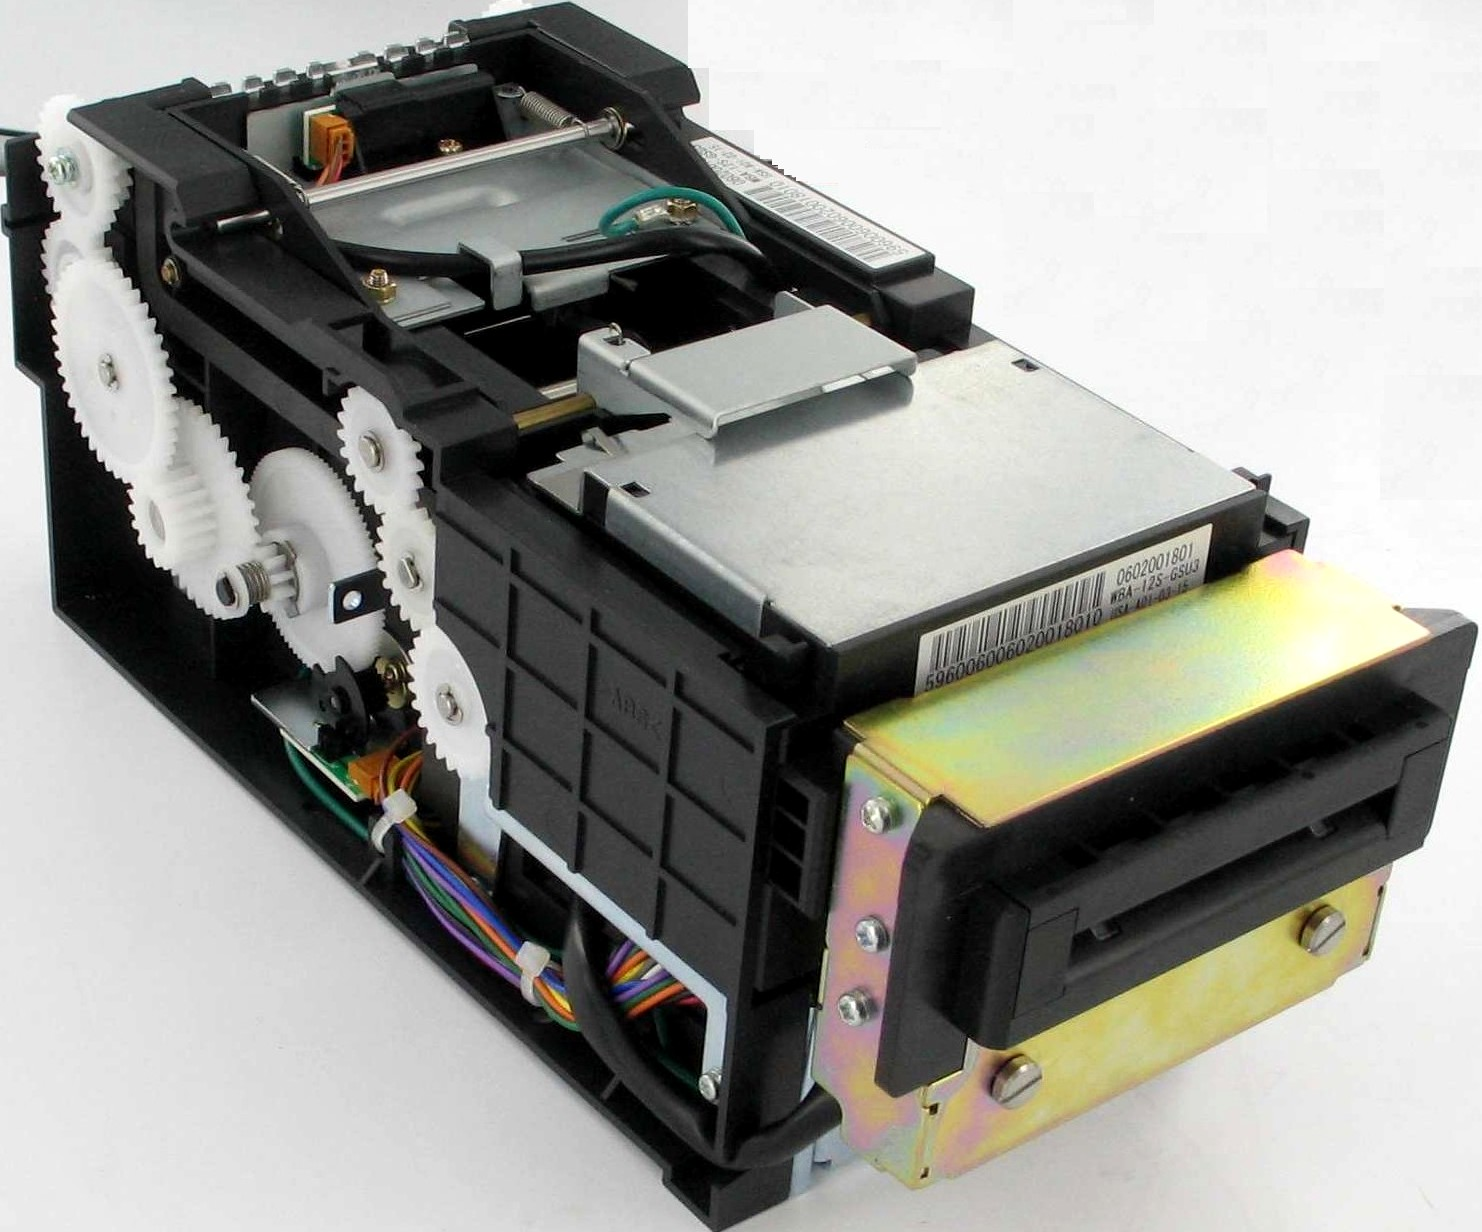 BILL ACCEPTOR FOR H2 PIC JCM WBA-12S-GSU3 - REFURBISHED (REPAIR PRICE REQUIRES THE RETURN OF DEFECTIVE CORE)